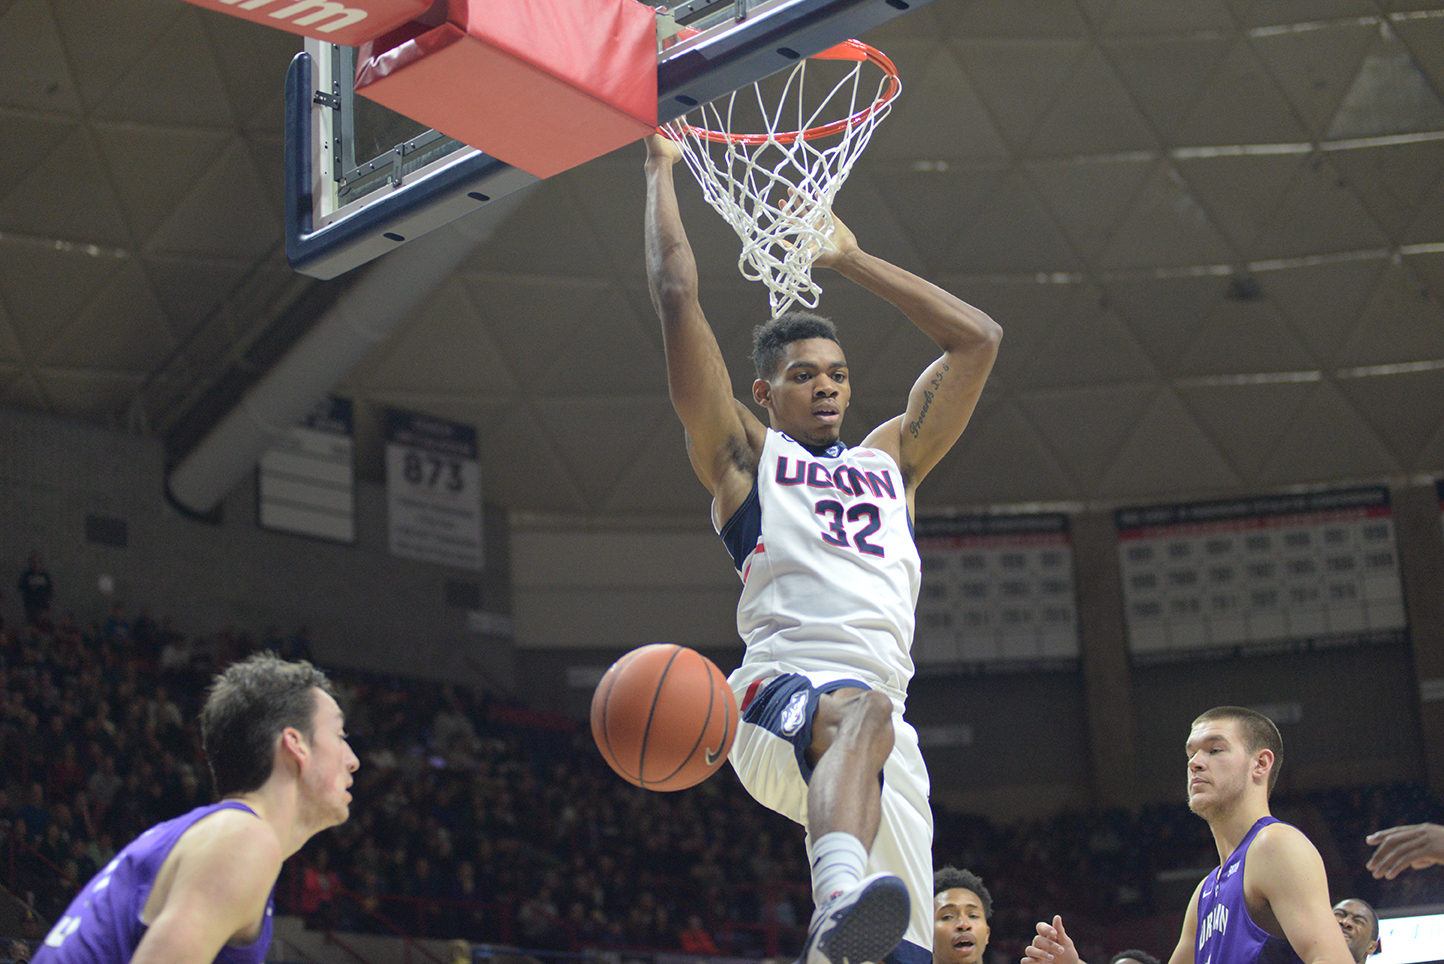 UConn men's basketball forward Shonn Miller dunks during the Huskies' game against Furman at Gampel Pavilion in Storrs, Connecticut on Saturday, Nov. 21, 2015. Miller led UConn with 18 points and seven rebounds. (Ashley Maher/The Daily Campus)